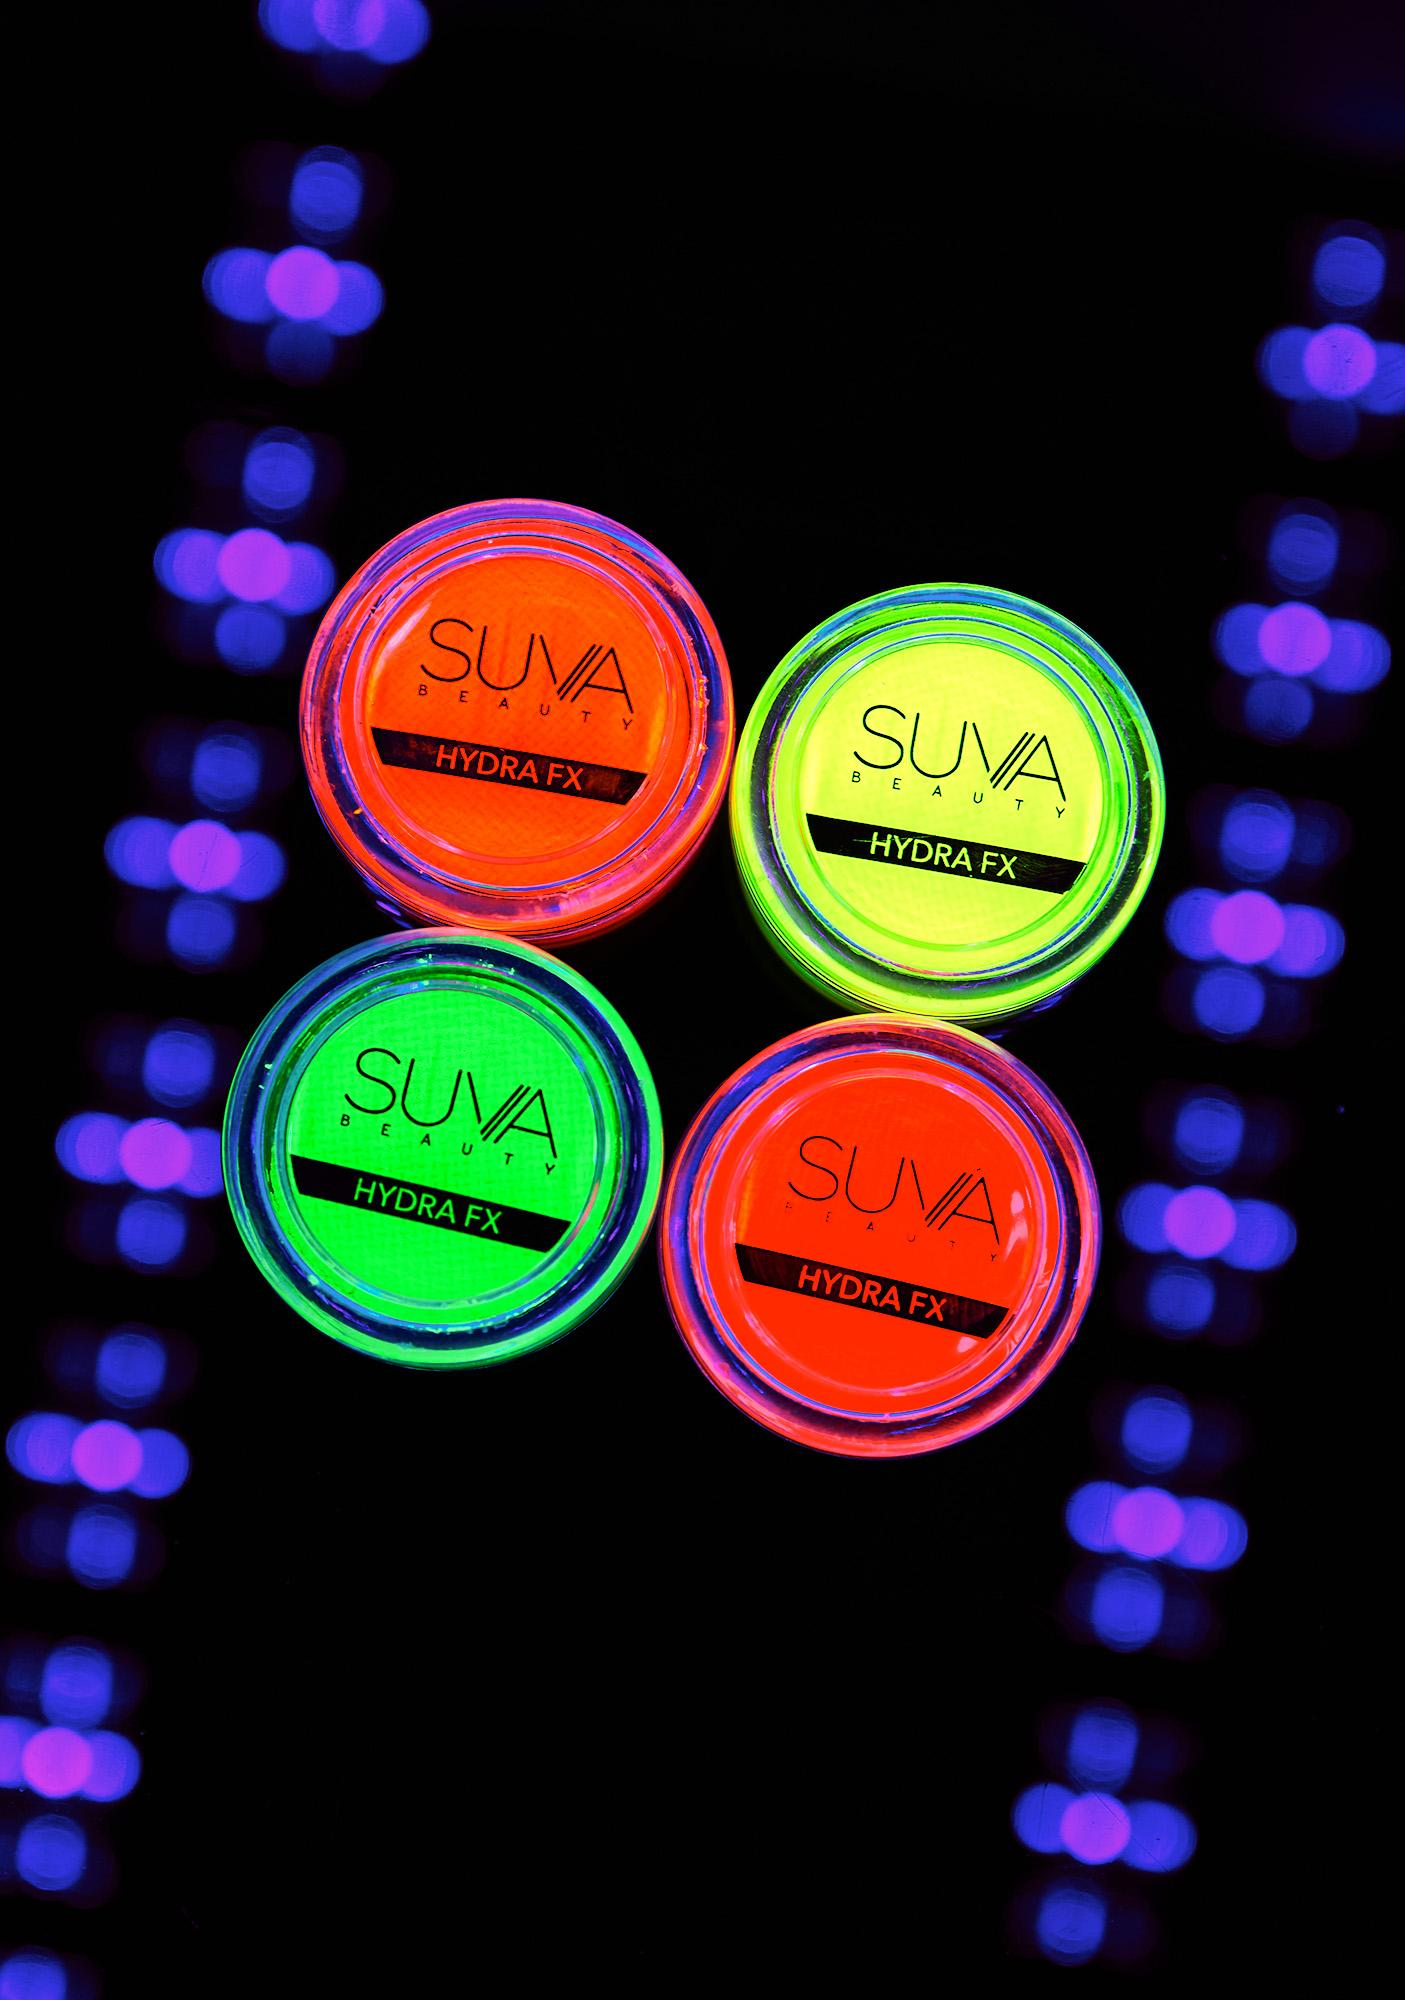 SUVA Beauty Acid Trip UV Hydra FX